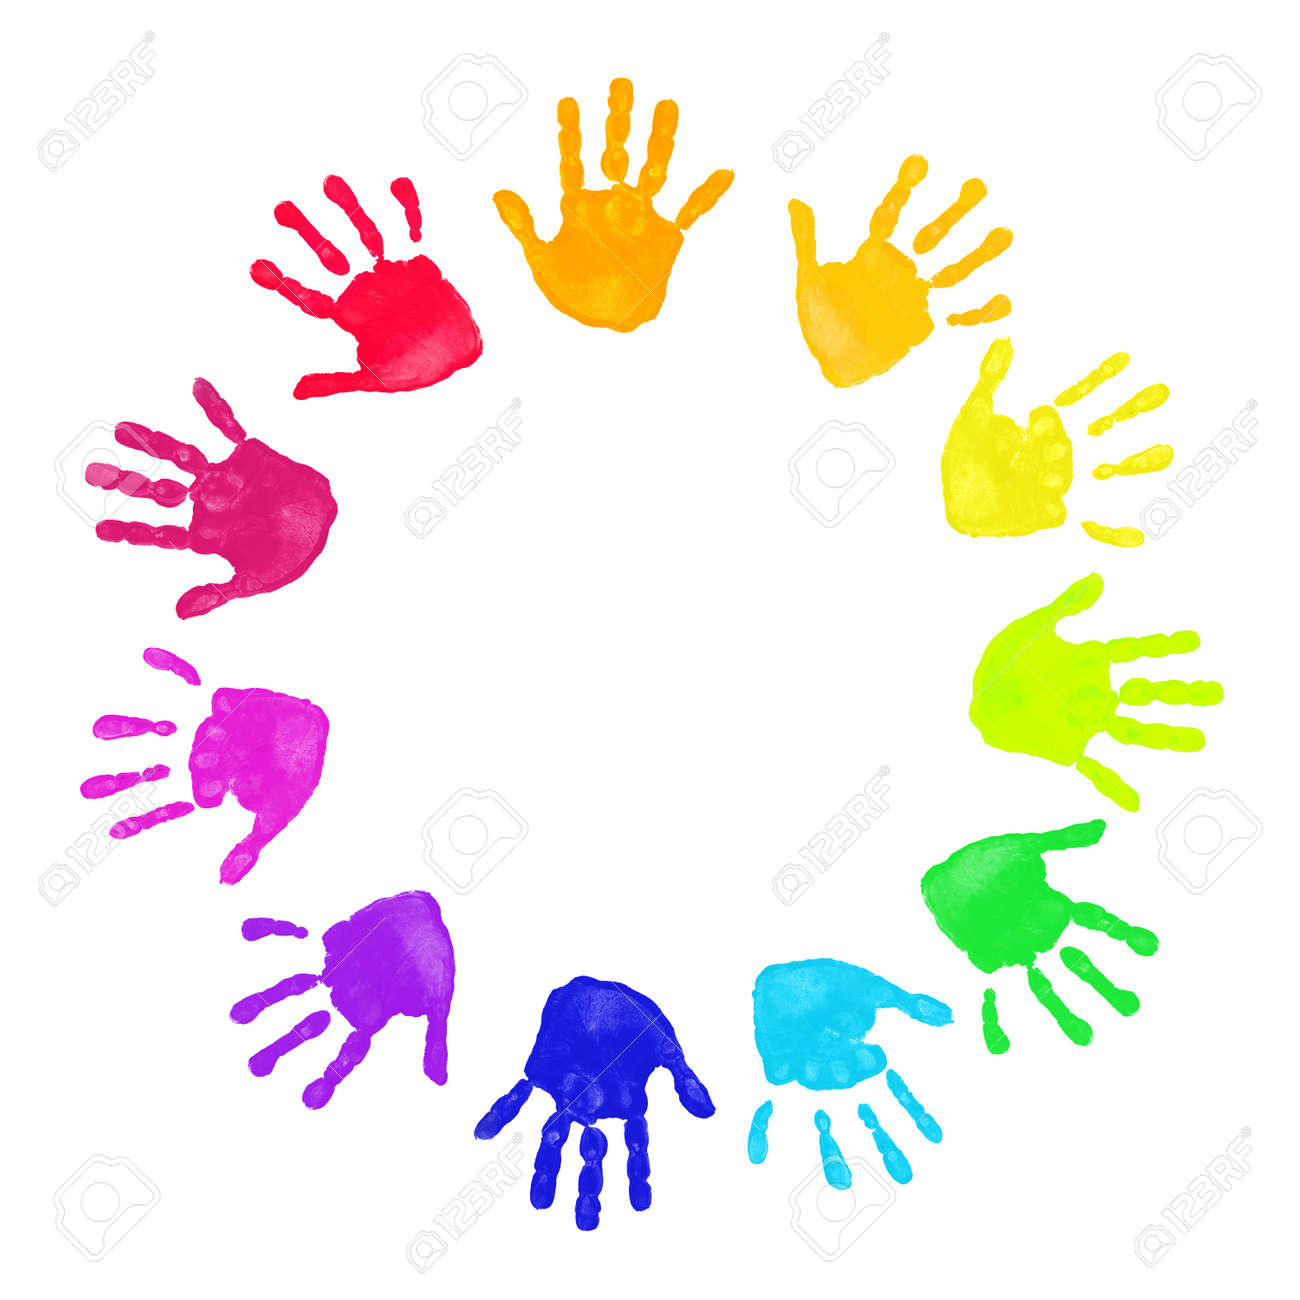 Set of colorful hand prints in rainbow order isolated on white background Stock Photo - 8155823